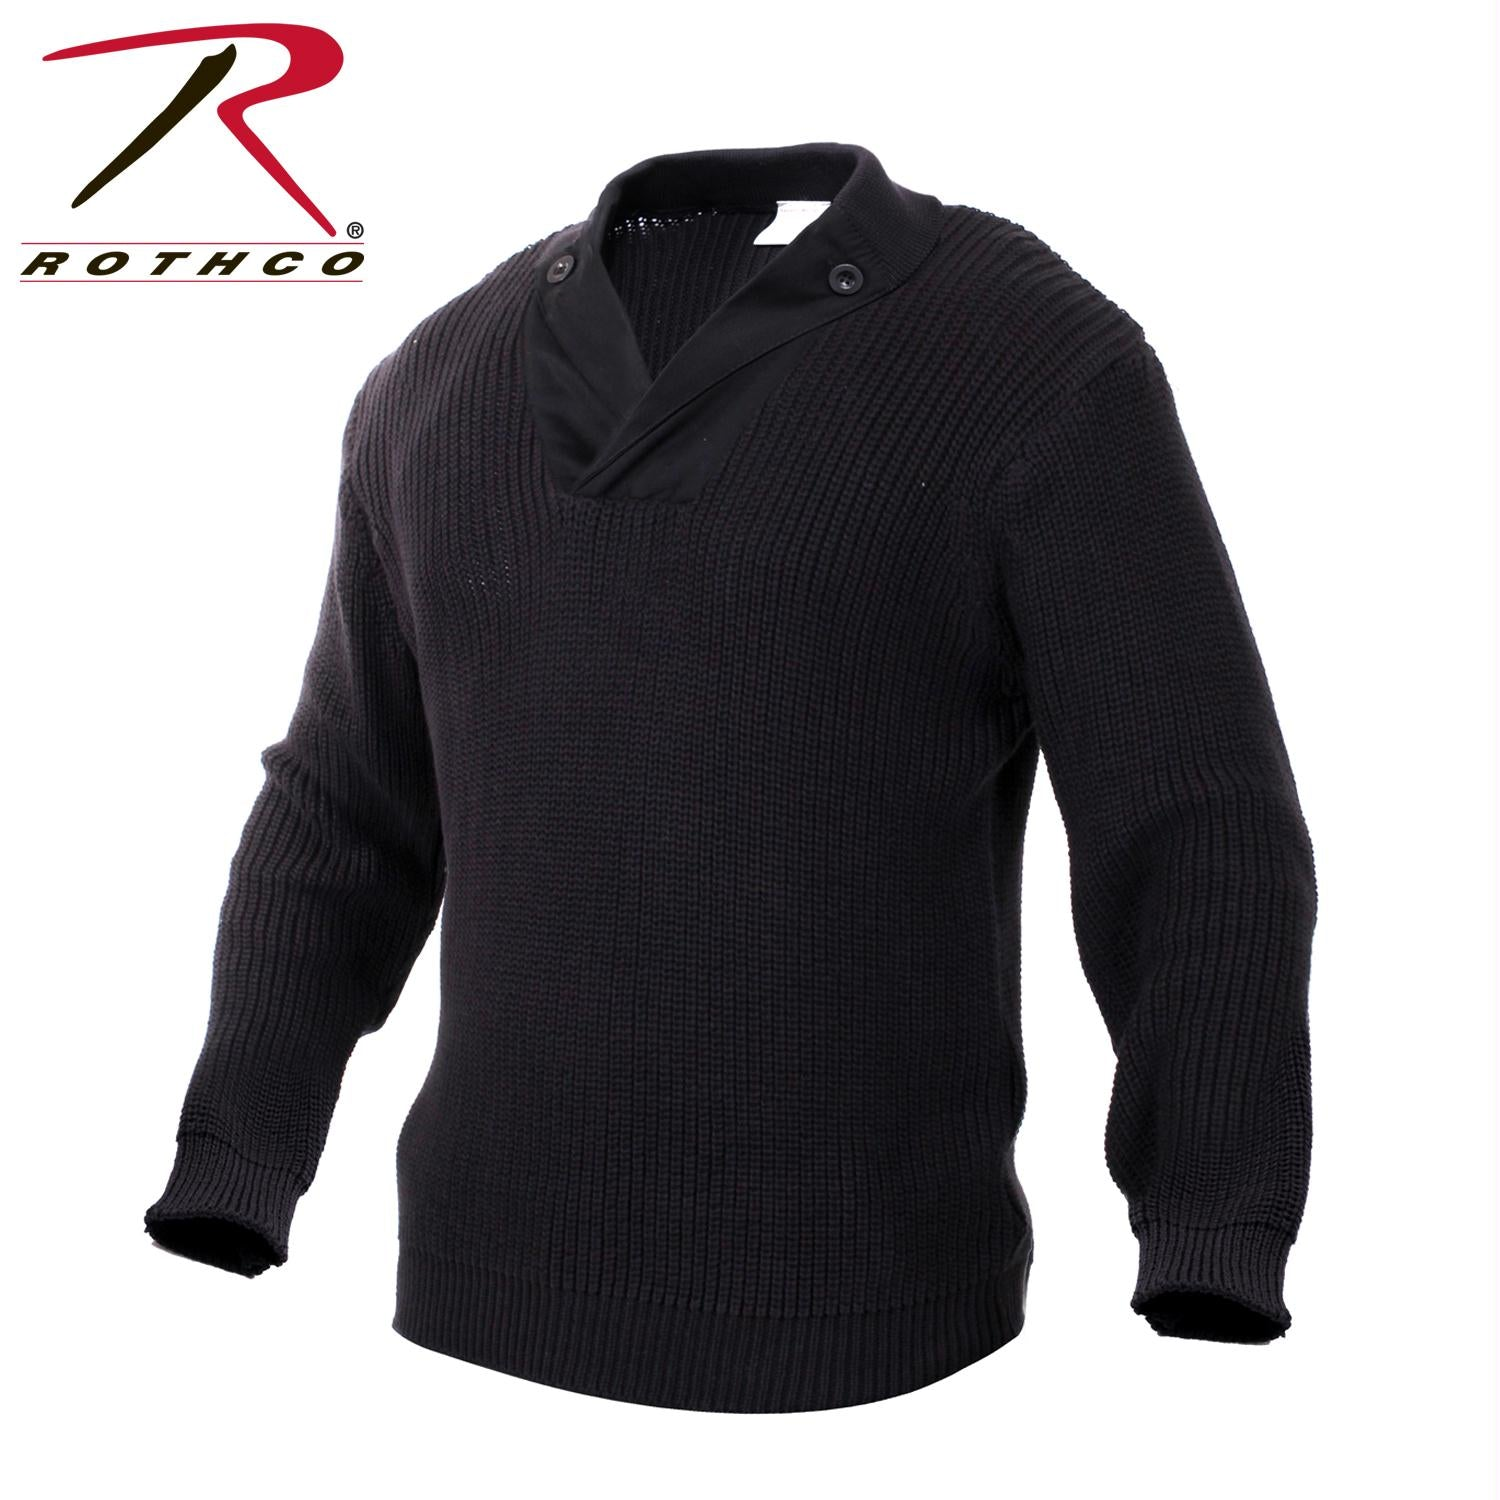 Rothco WWII Vintage Mechanics Sweater - Black / L